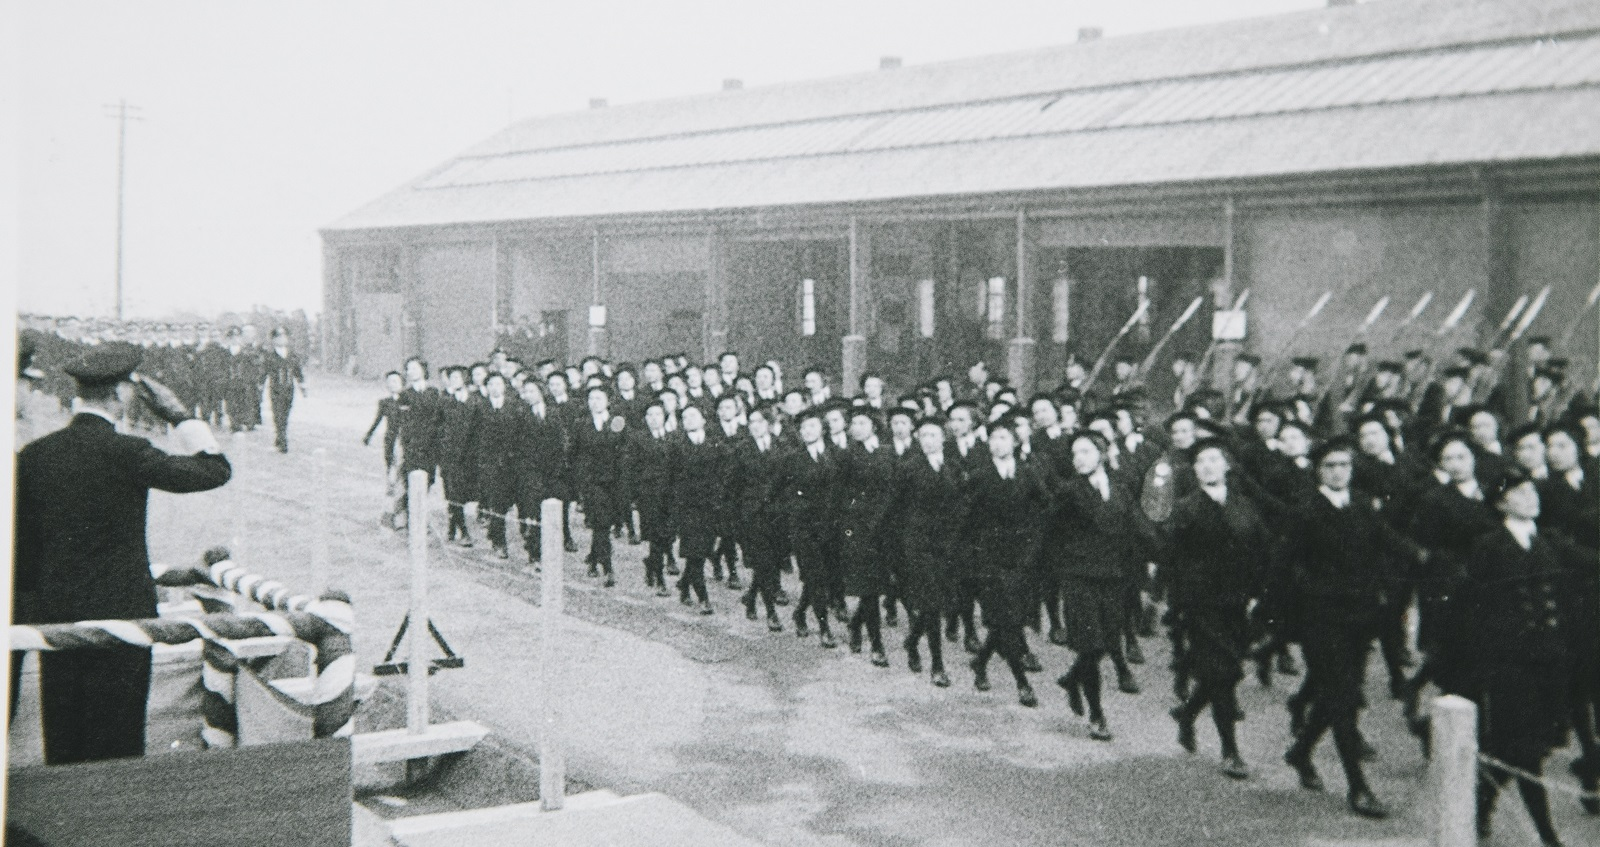 Wrens marching past King George VI